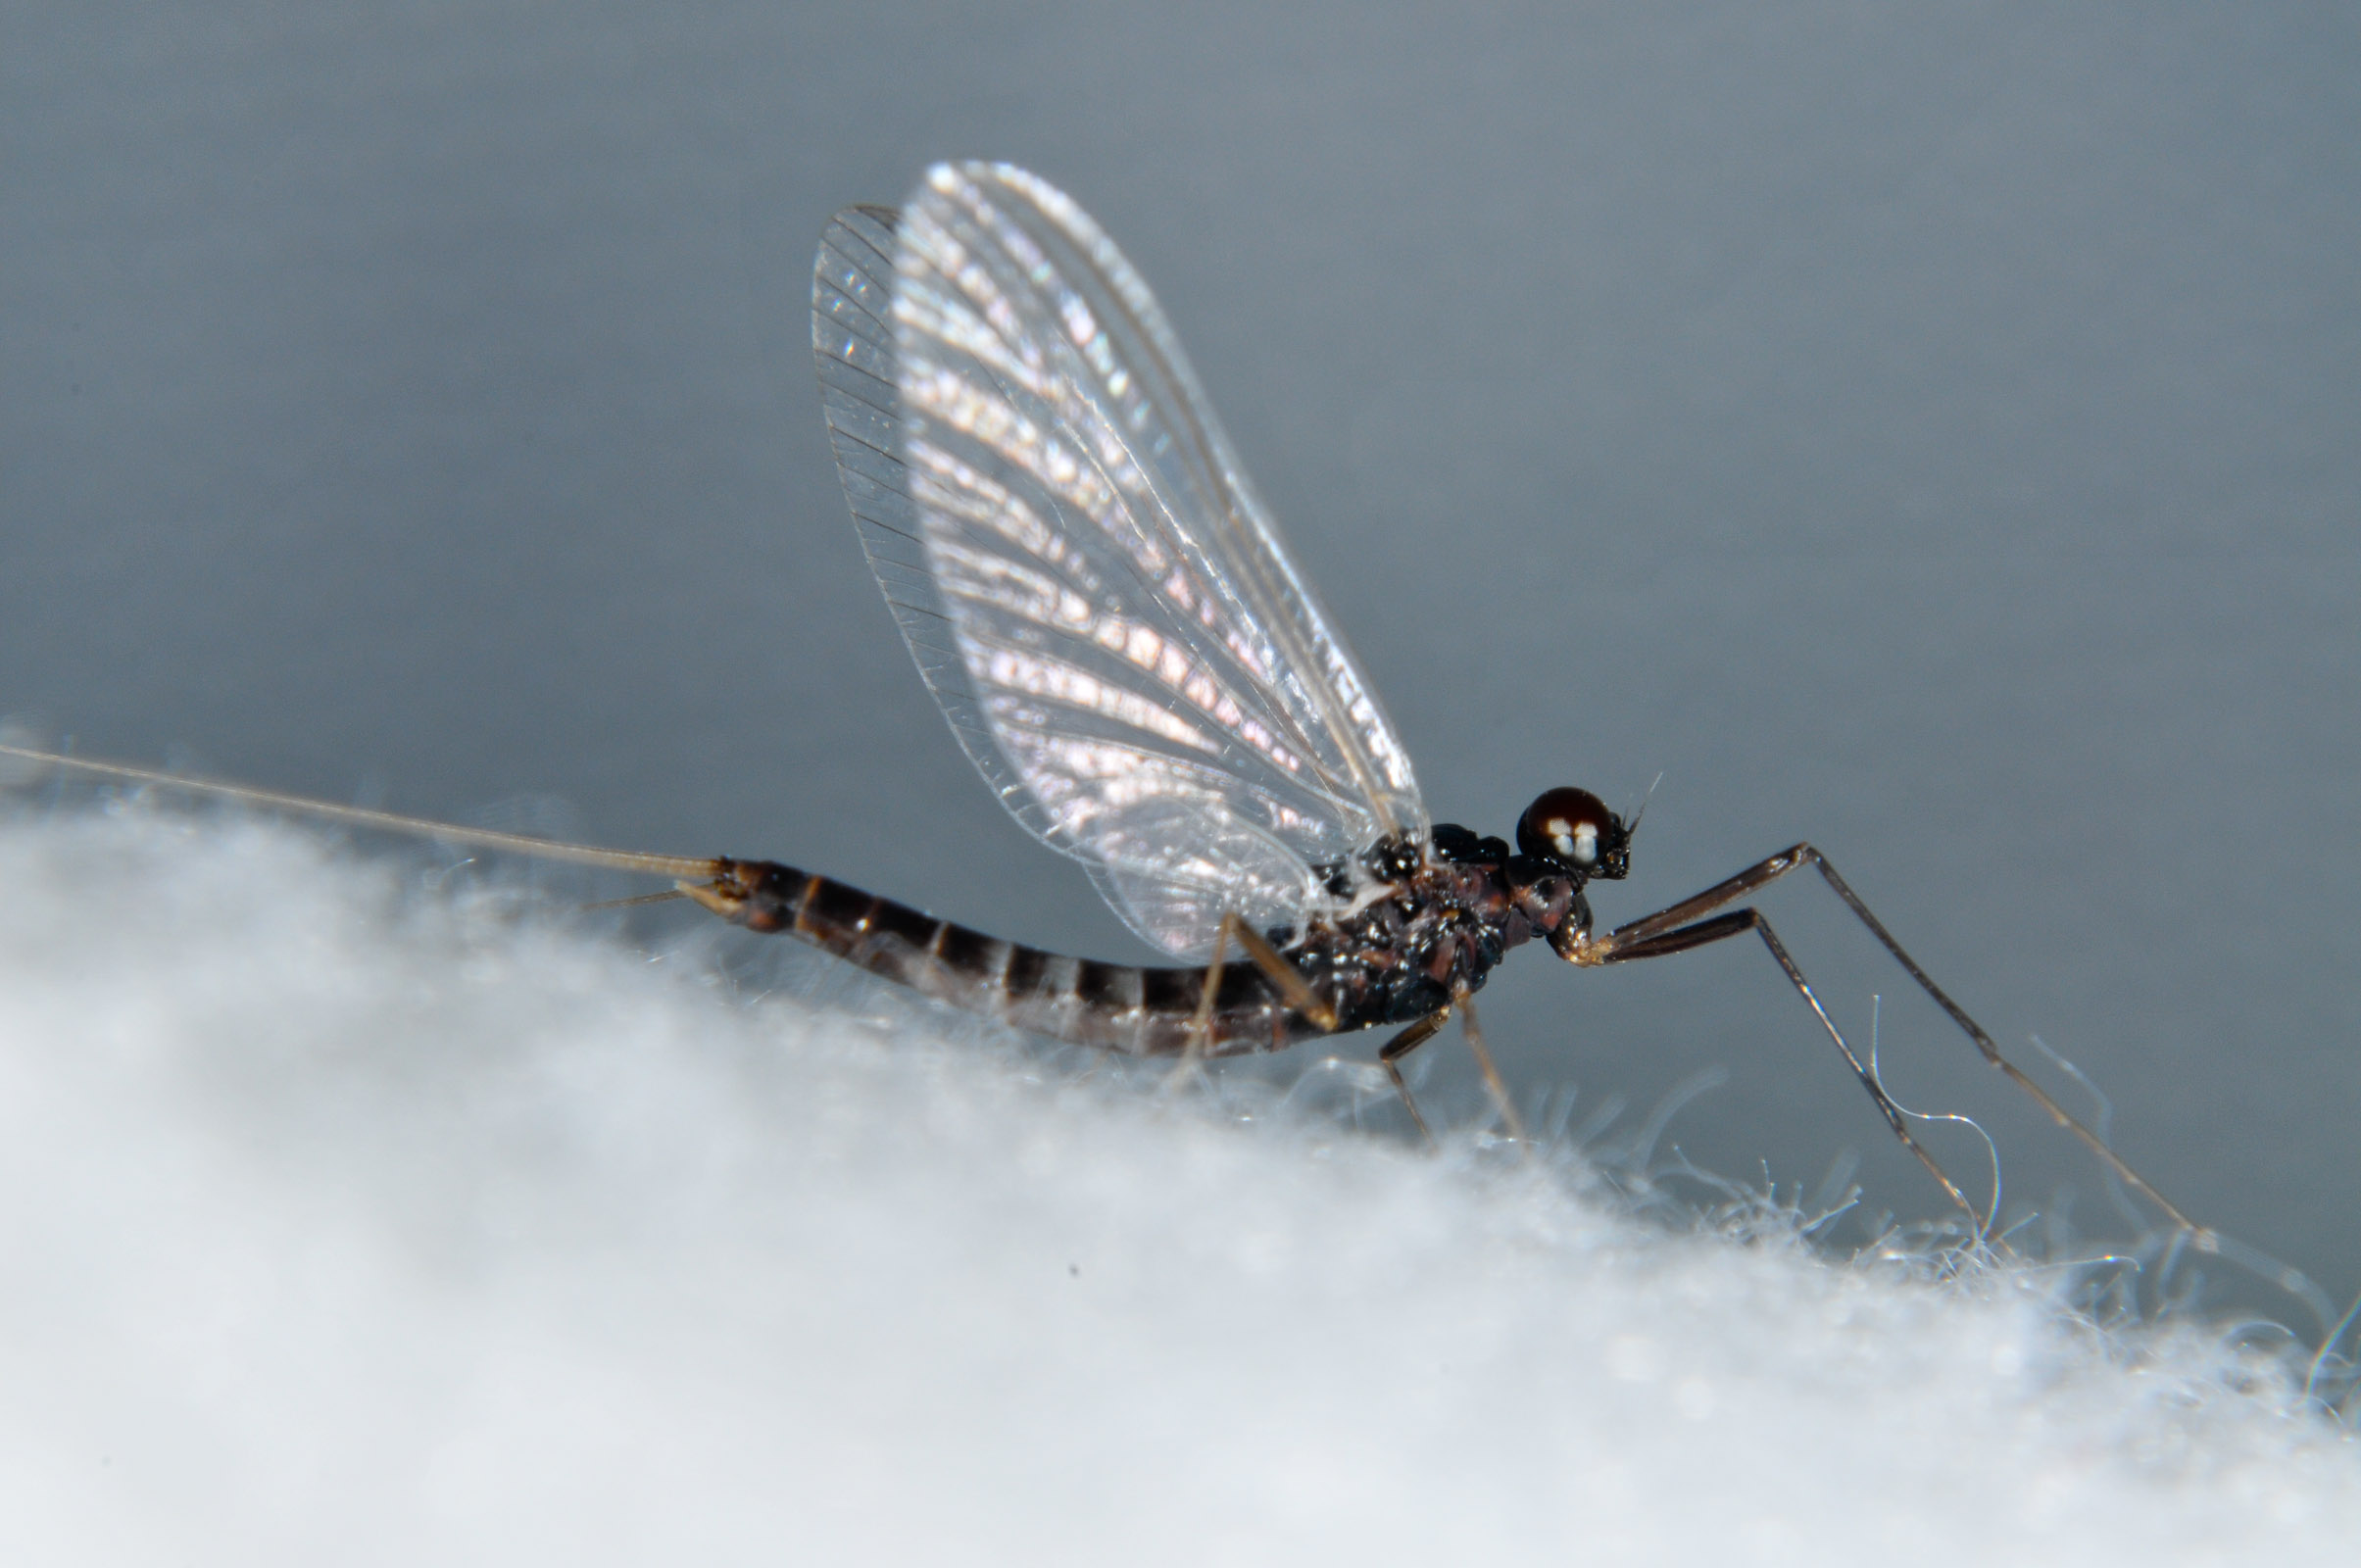 Male Neoleptophlebia heteronea (Blue Quill) Mayfly Adult from the  Touchet River in Washington